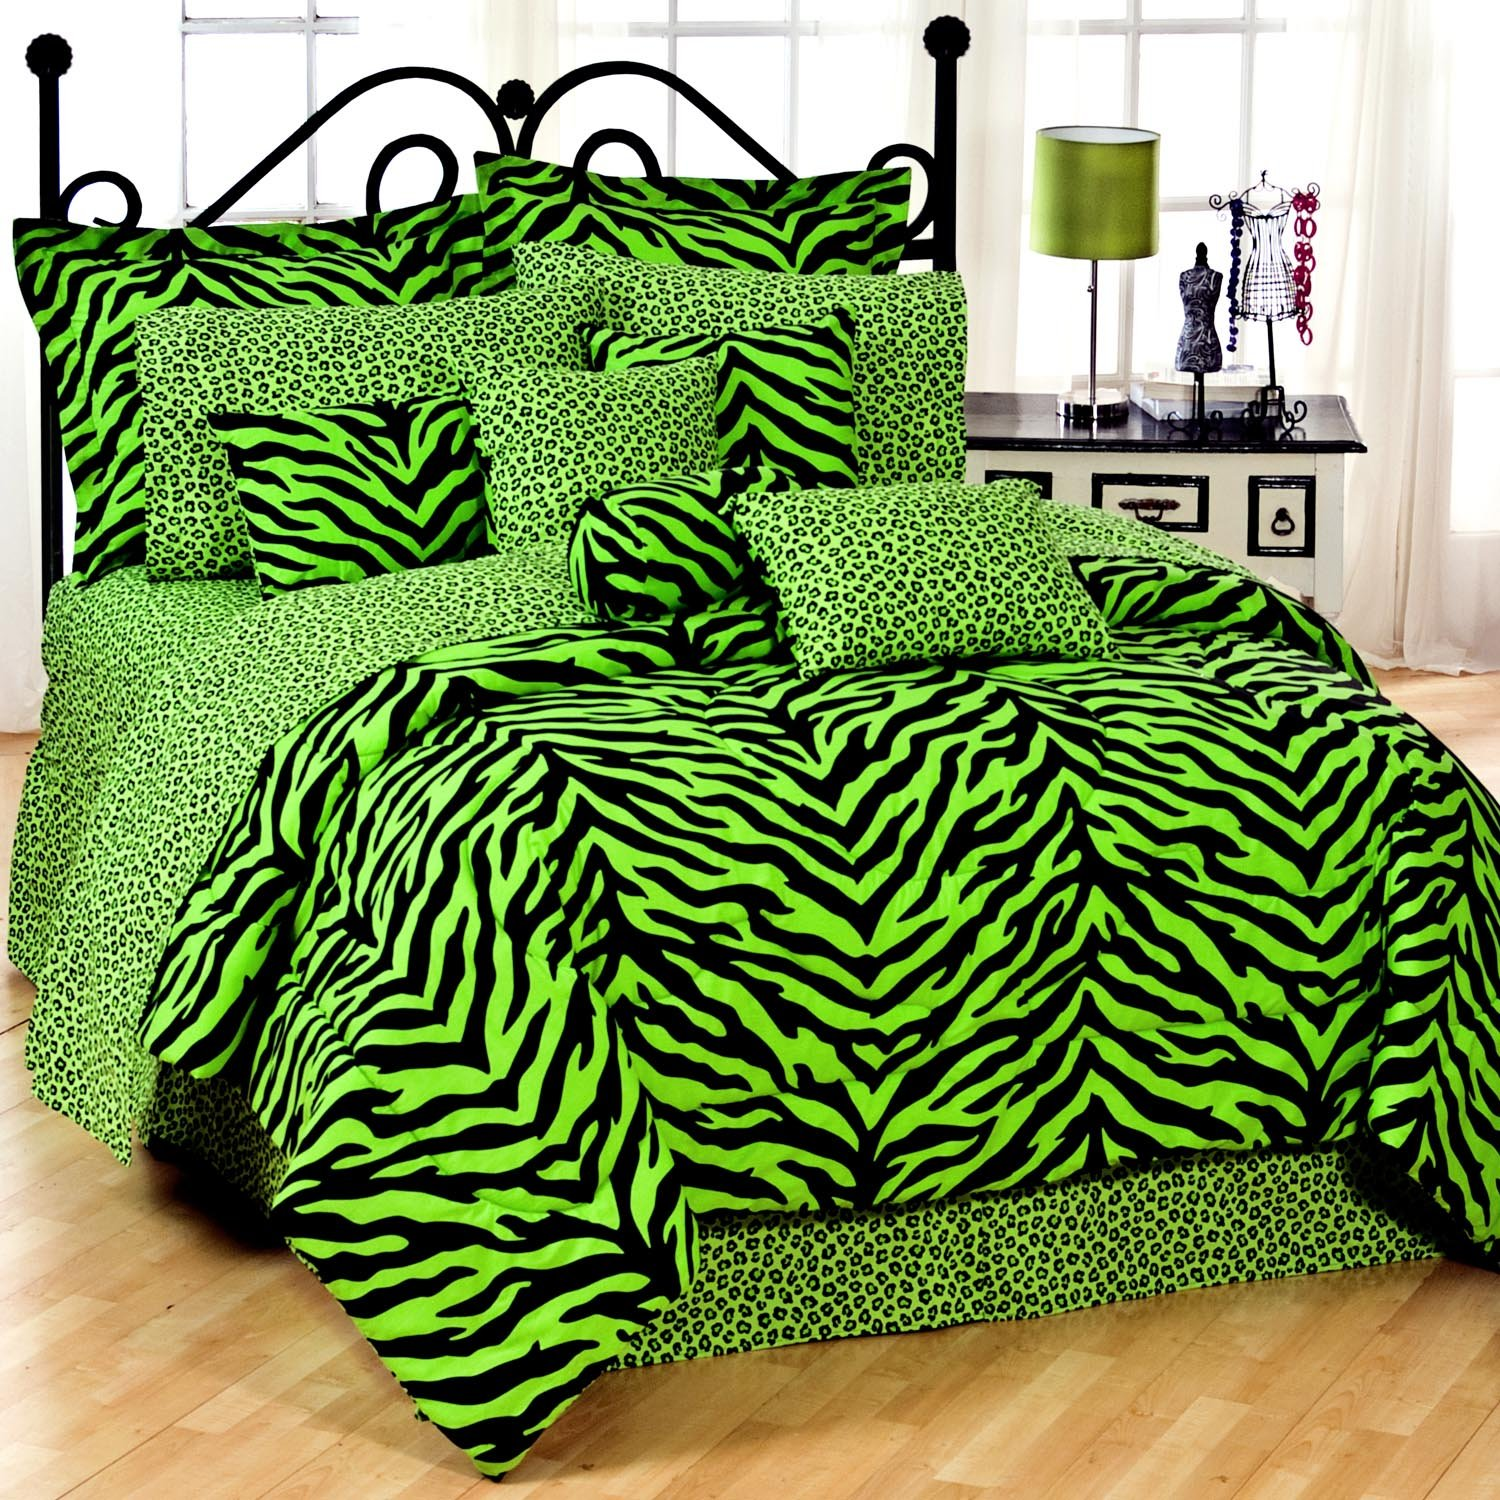 lime green zebra bedding